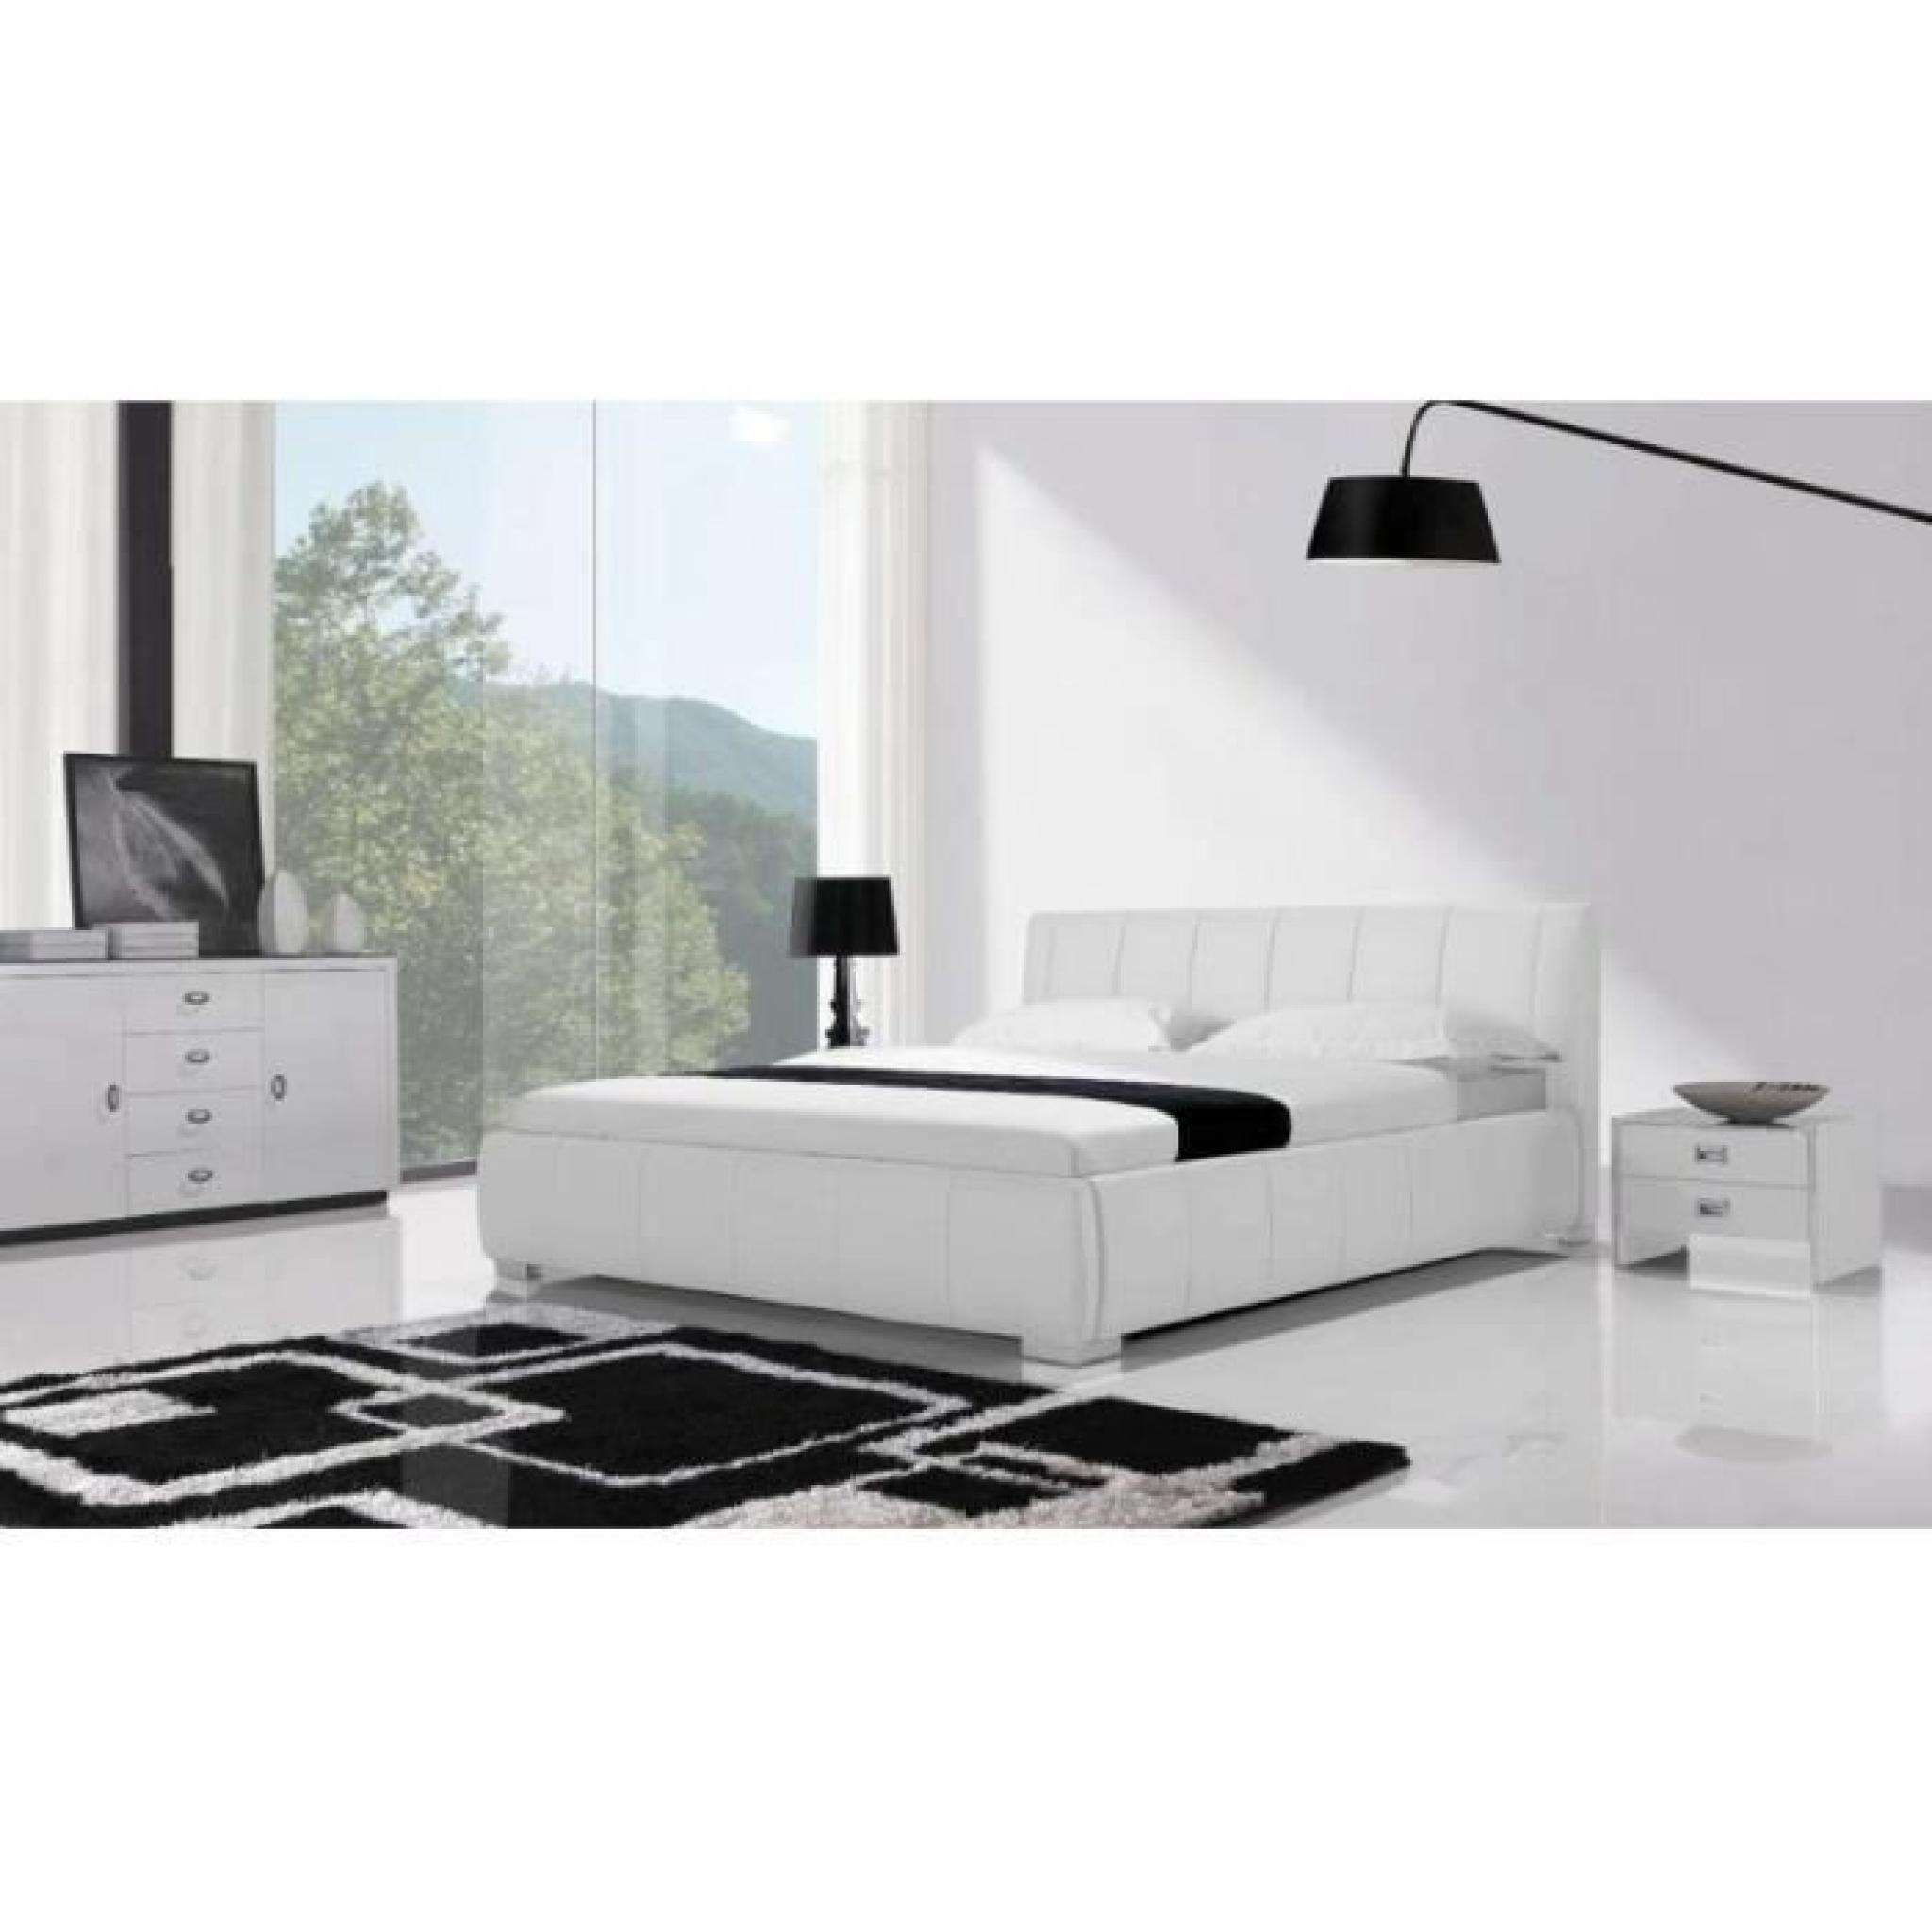 justhome rialto blanc lit rembourr en cuir cologique. Black Bedroom Furniture Sets. Home Design Ideas